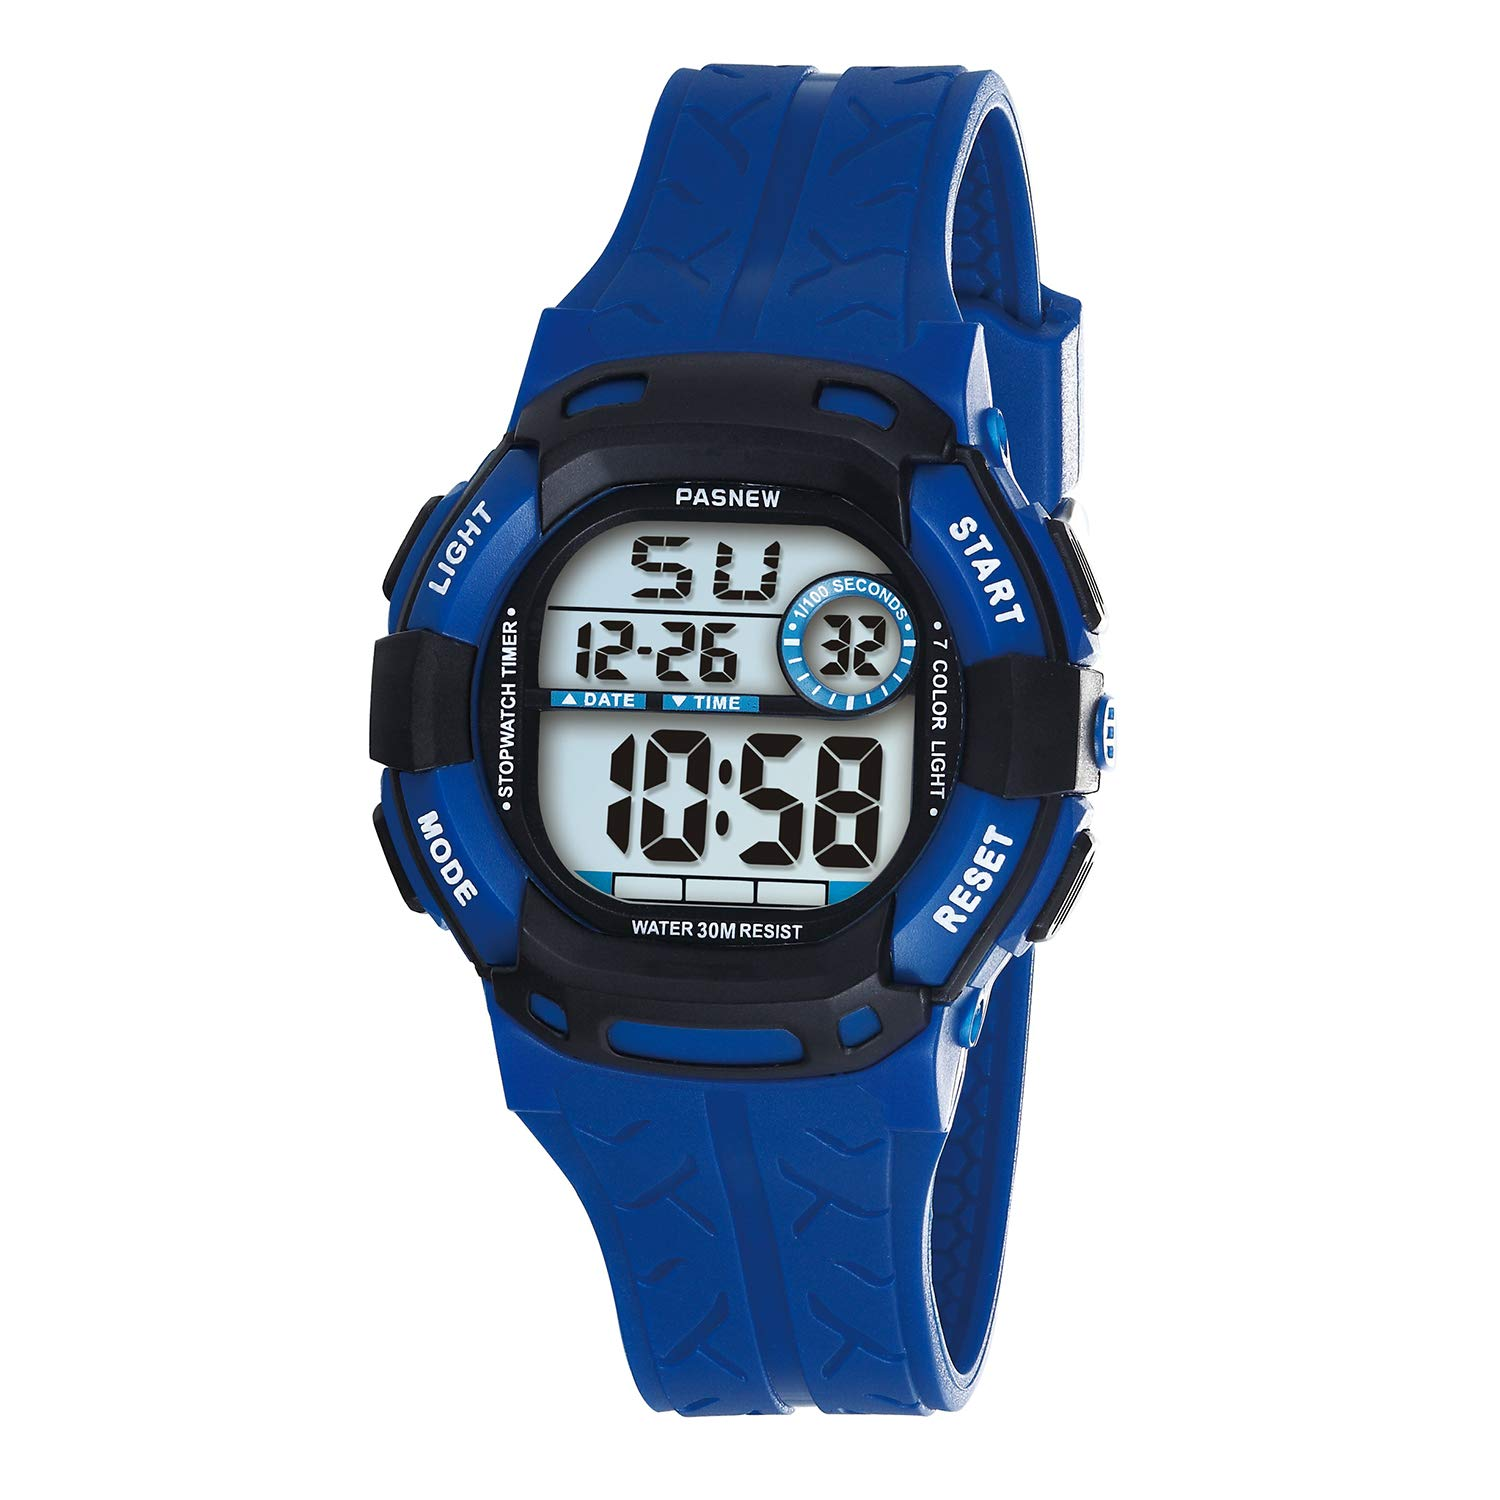 PASNEW Kids Watches Waterproof 100FT Digital Sports Wristwatch with 7-Color Flashing LED Light Alarm Stopwatch Chime Date Day Blue Black